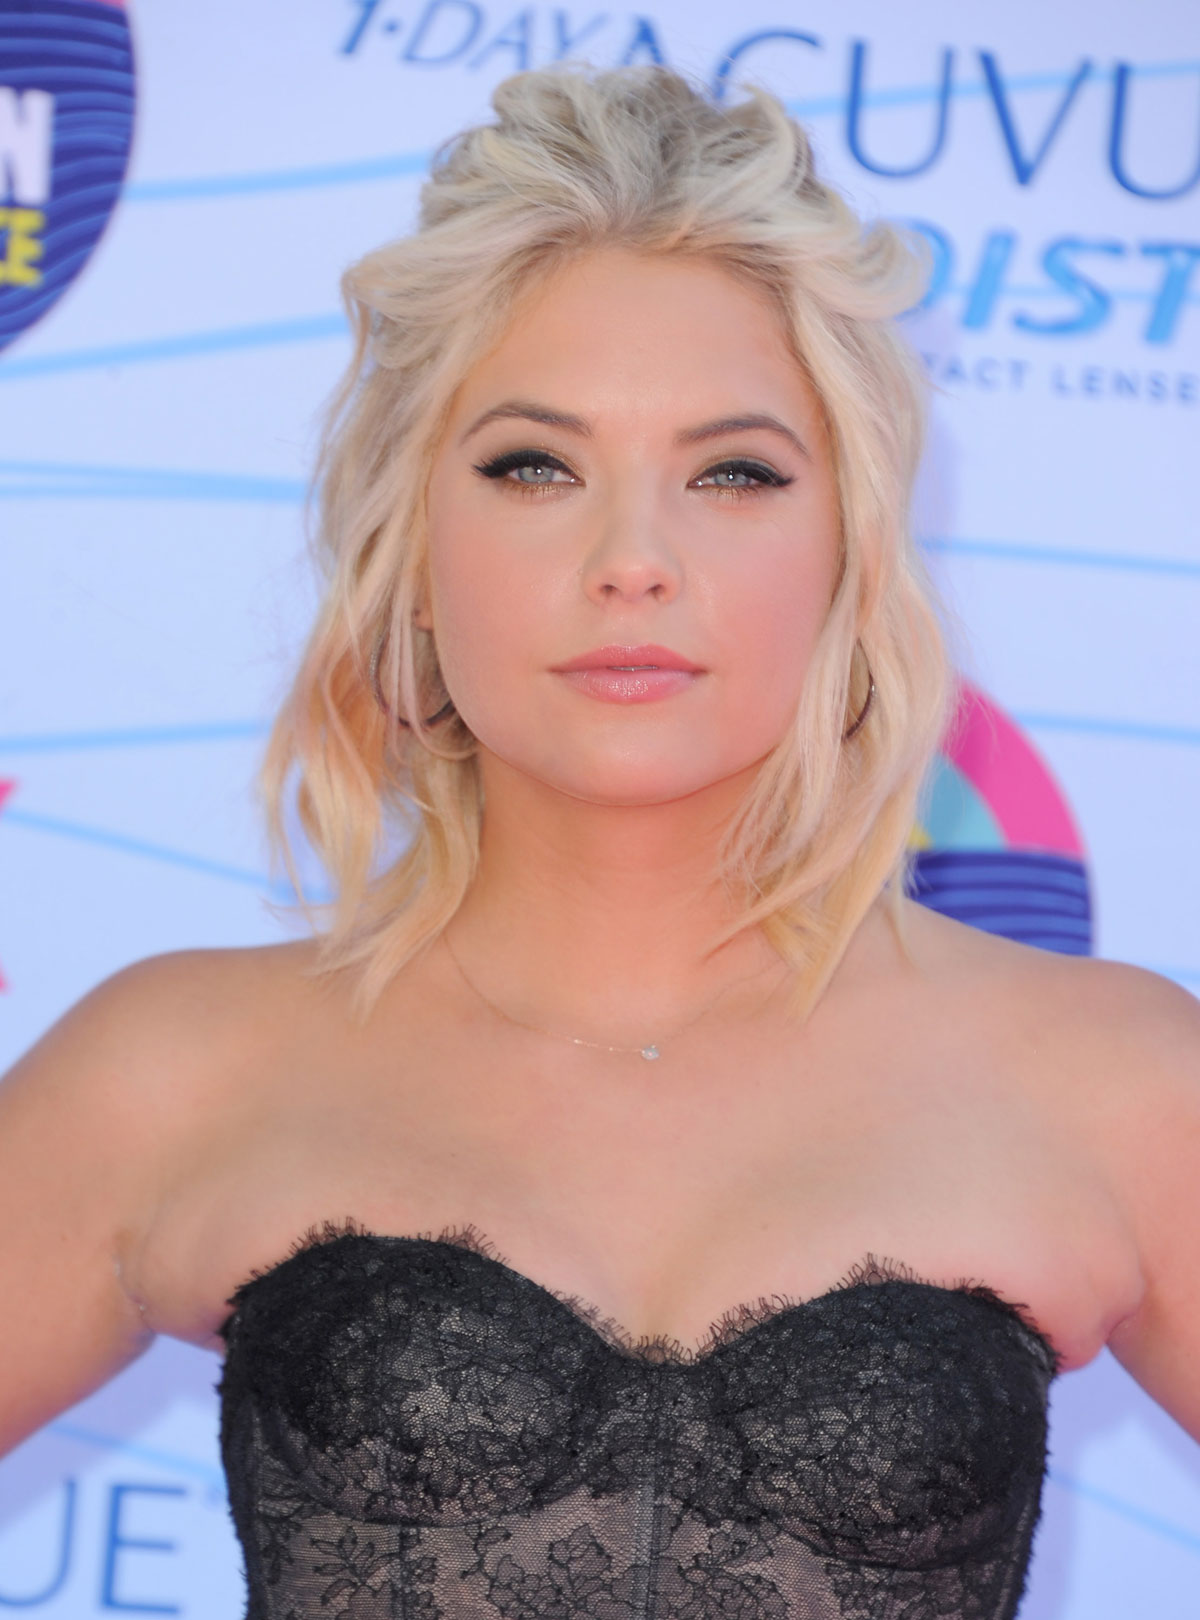 ASHLEY BENSON at 2012 Teen Choice Awards in Universal CityAshley Benson